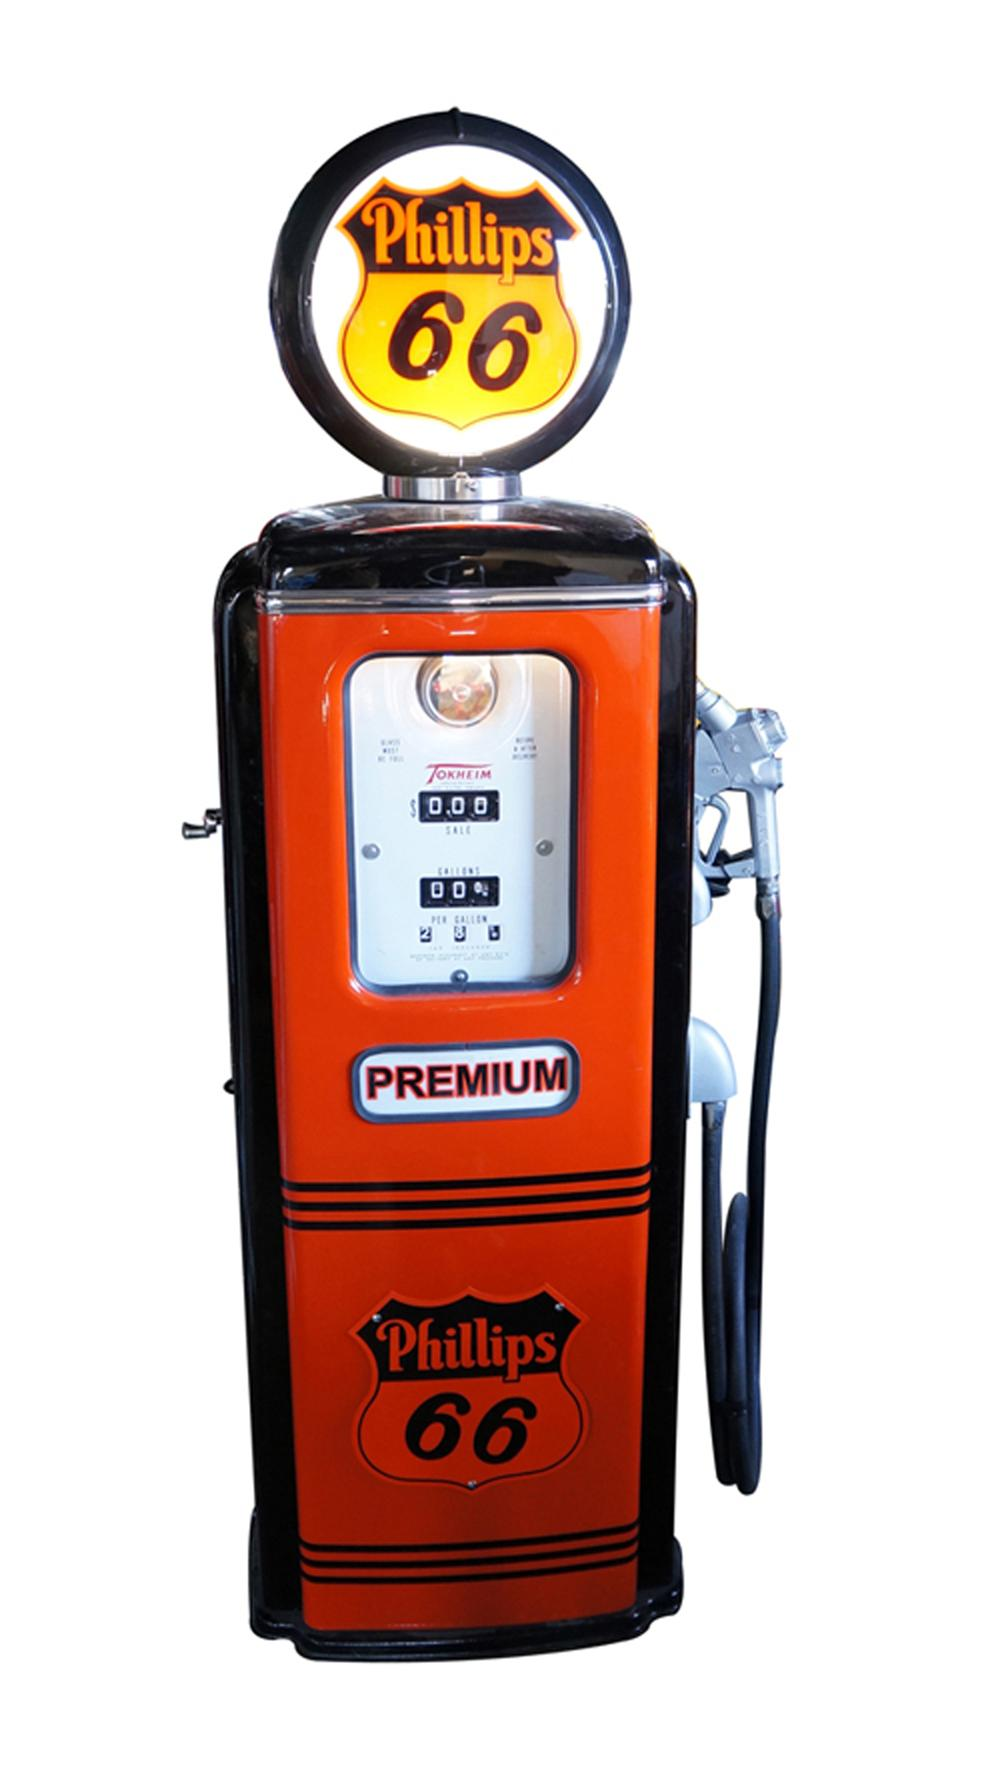 Stunning late 1940's-early 50's Philips 66 Gasoline restored Tokheim model #39 service station gas pump. - Front 3/4 - 170573